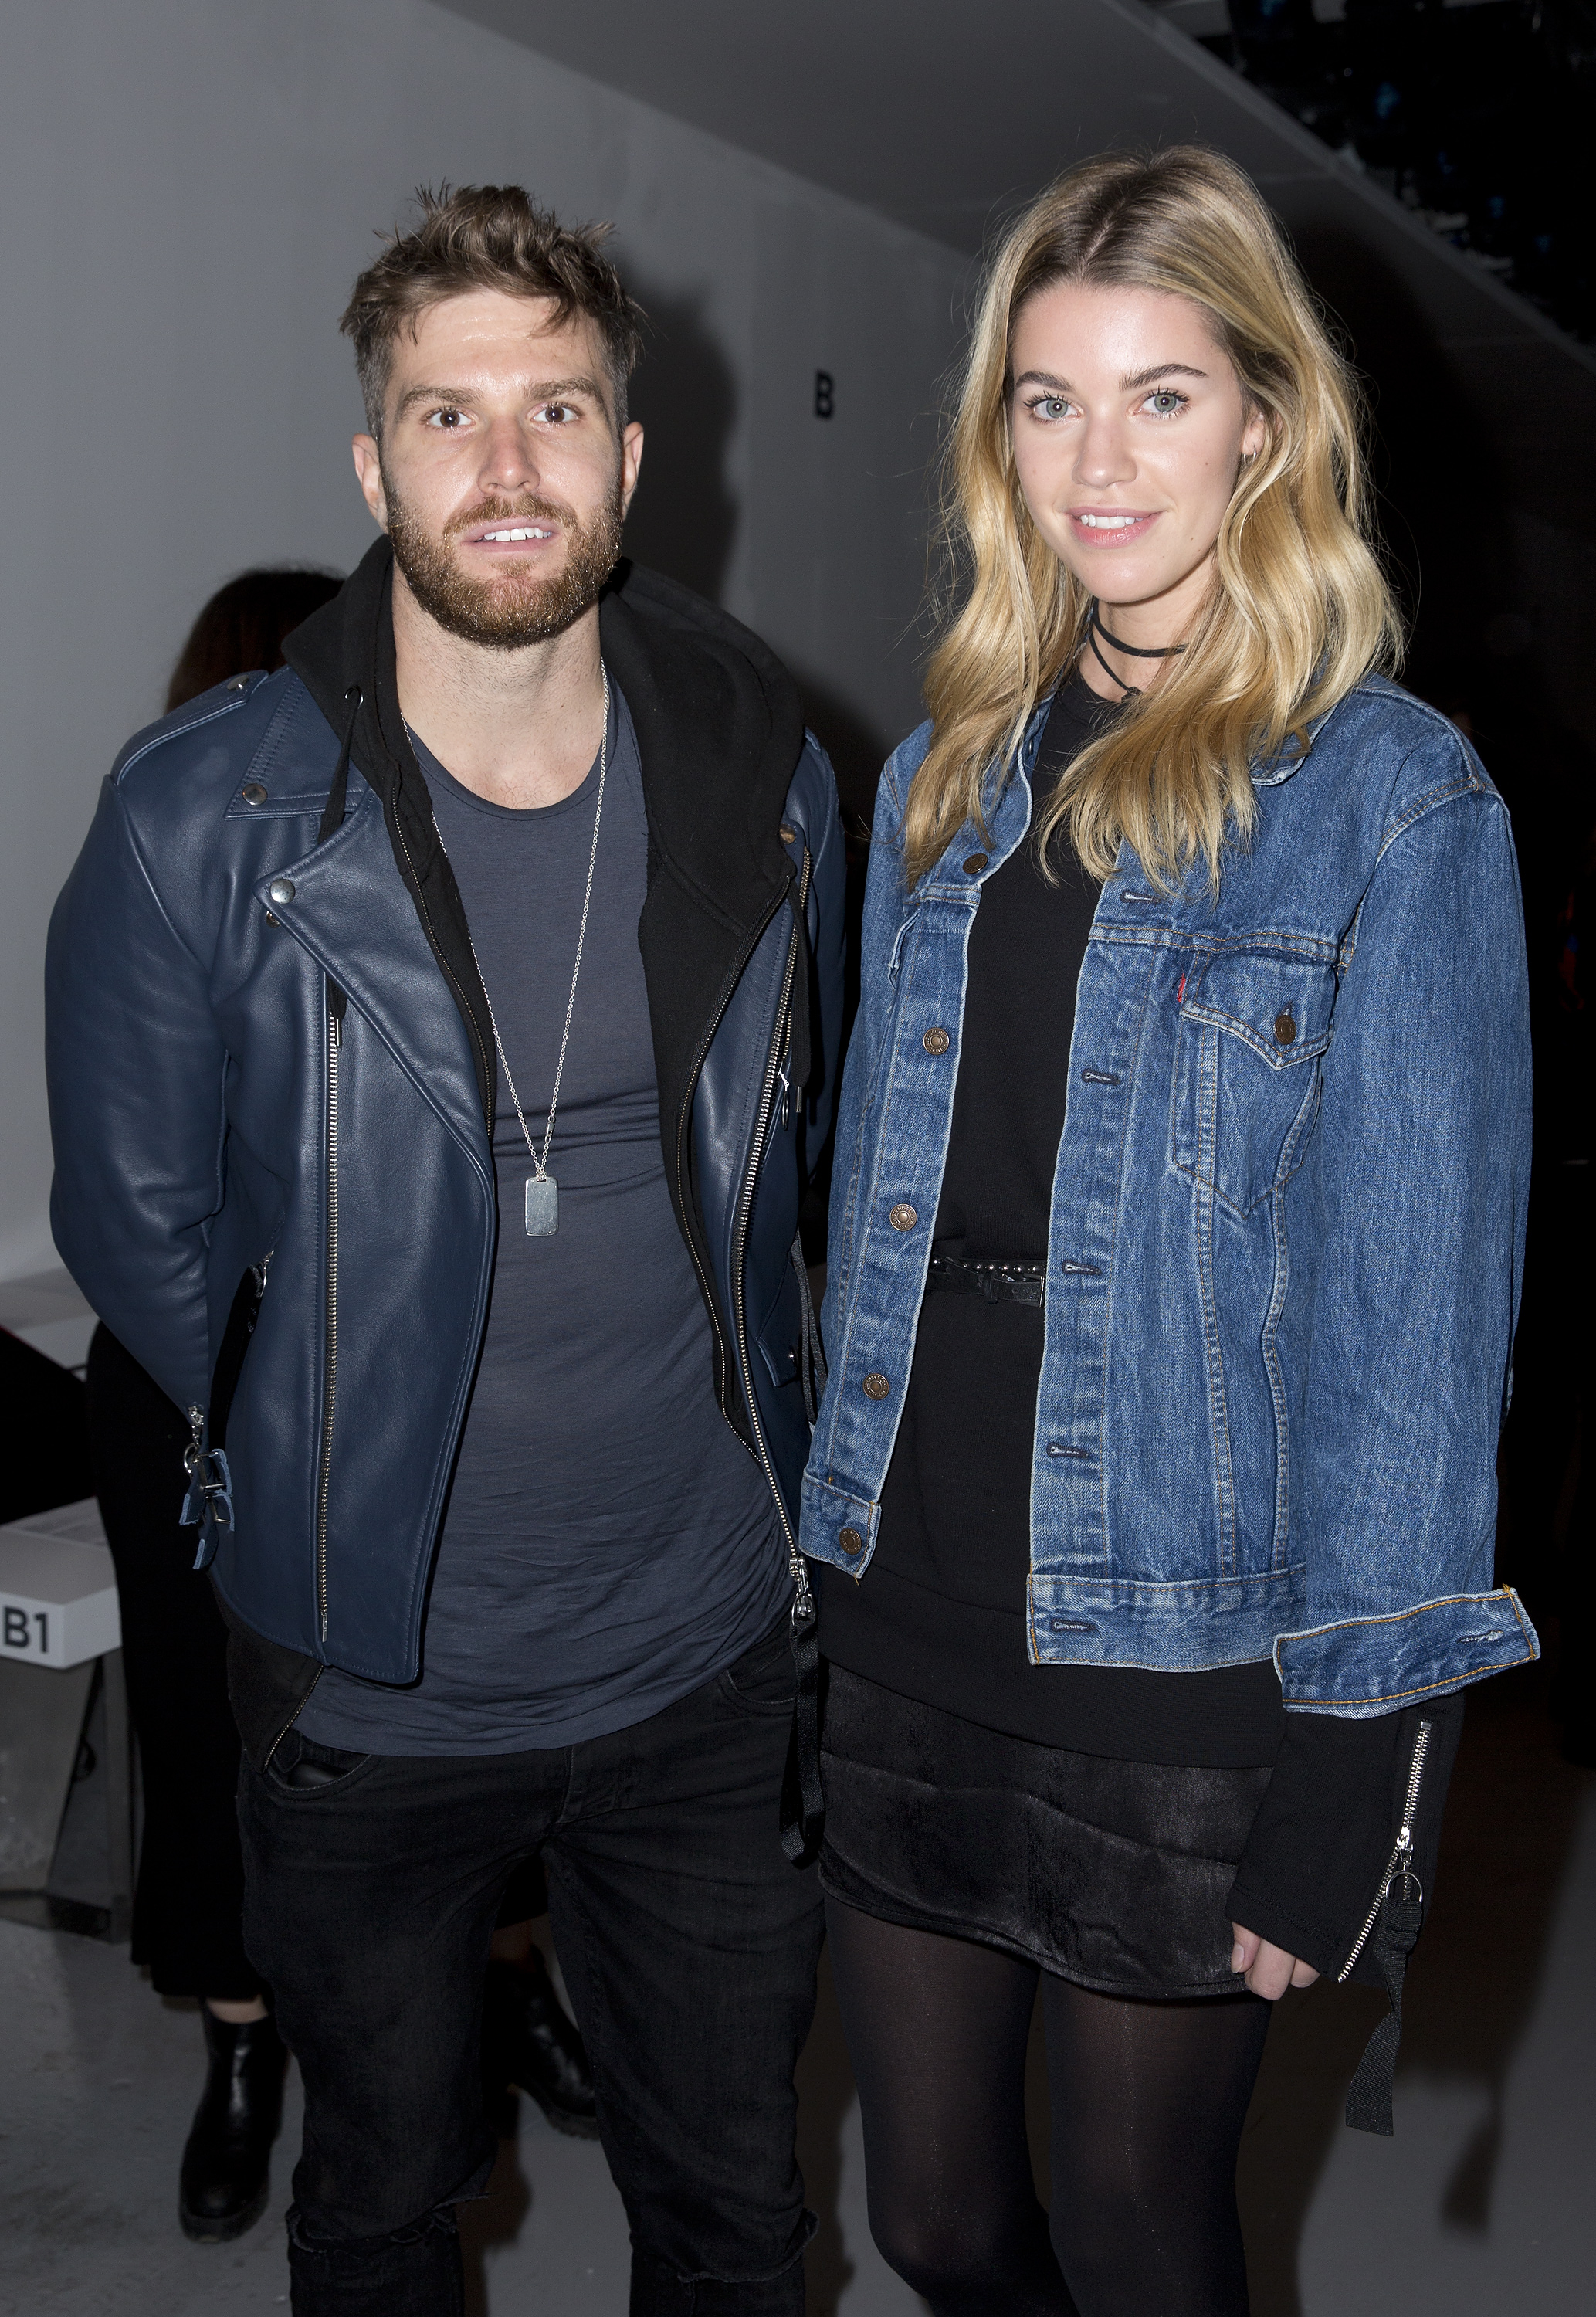 Joel Dommett and his fiancee Hannah Cooper. (Isabel Infantes/PA)